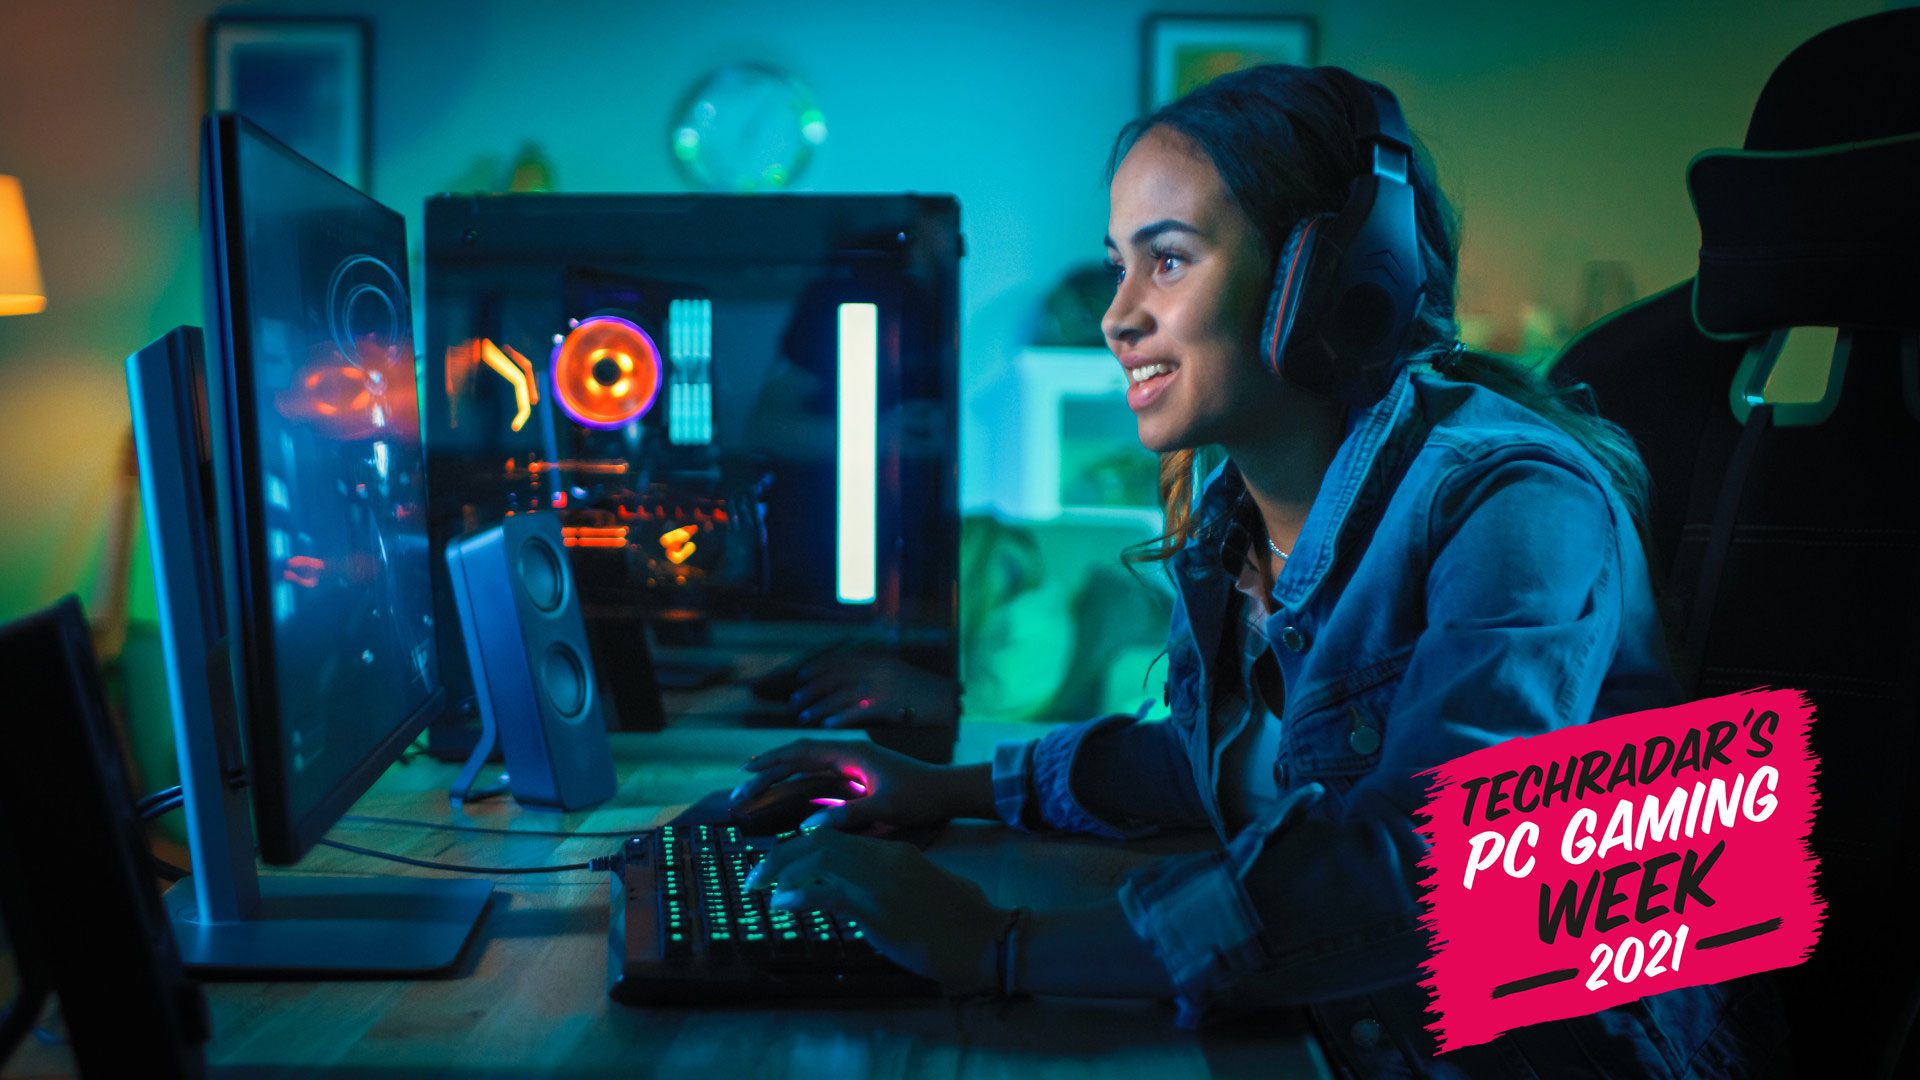 A PC gamer looking happy